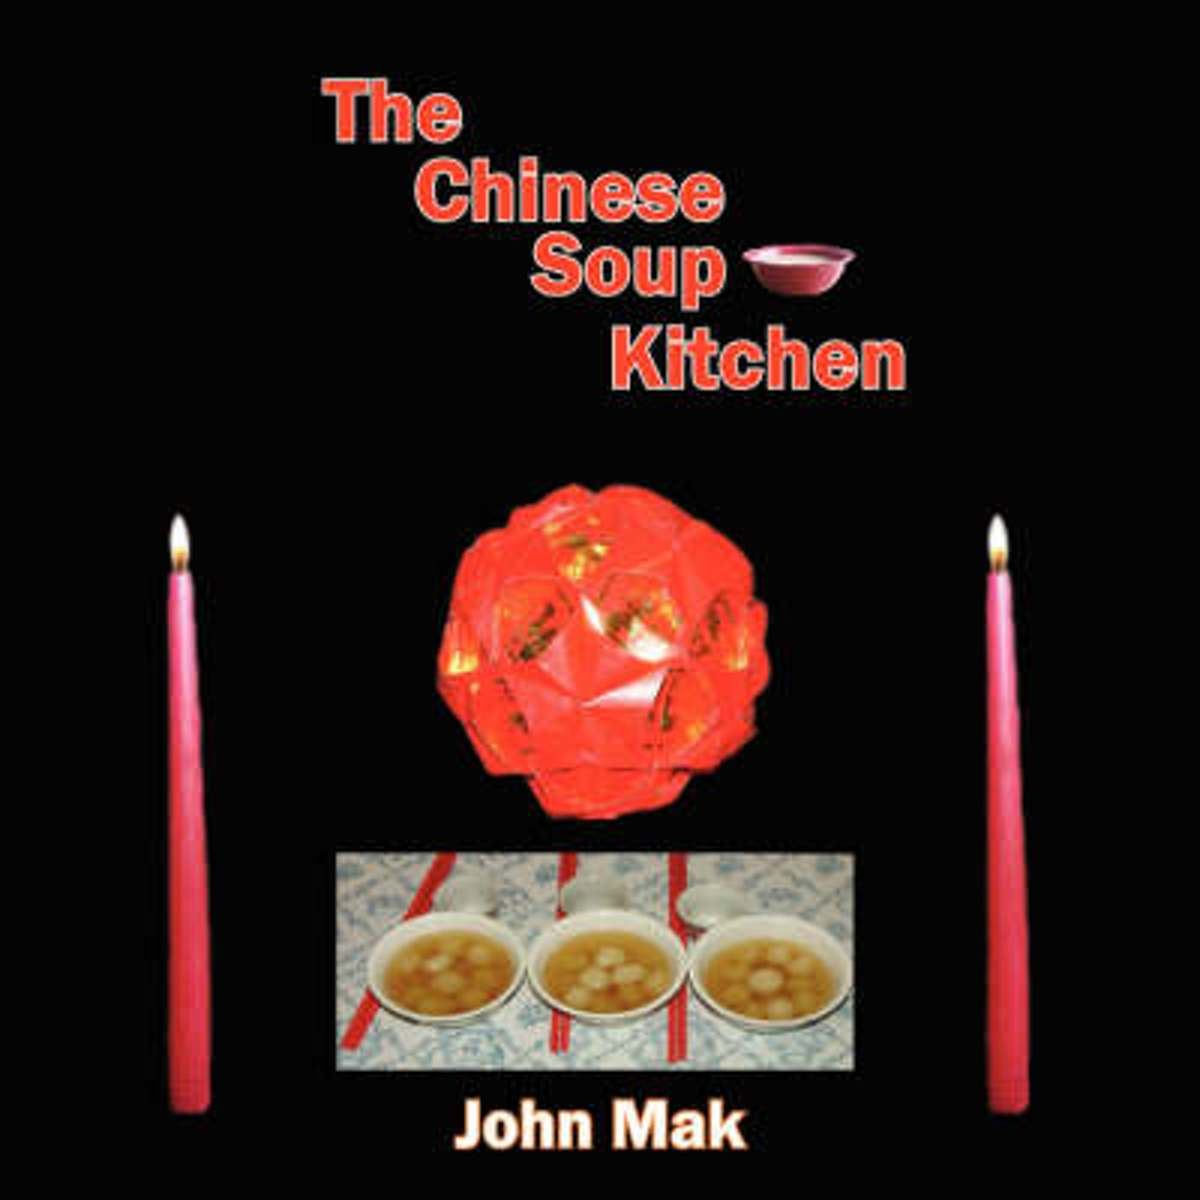 The Chinese Soup Kitchen